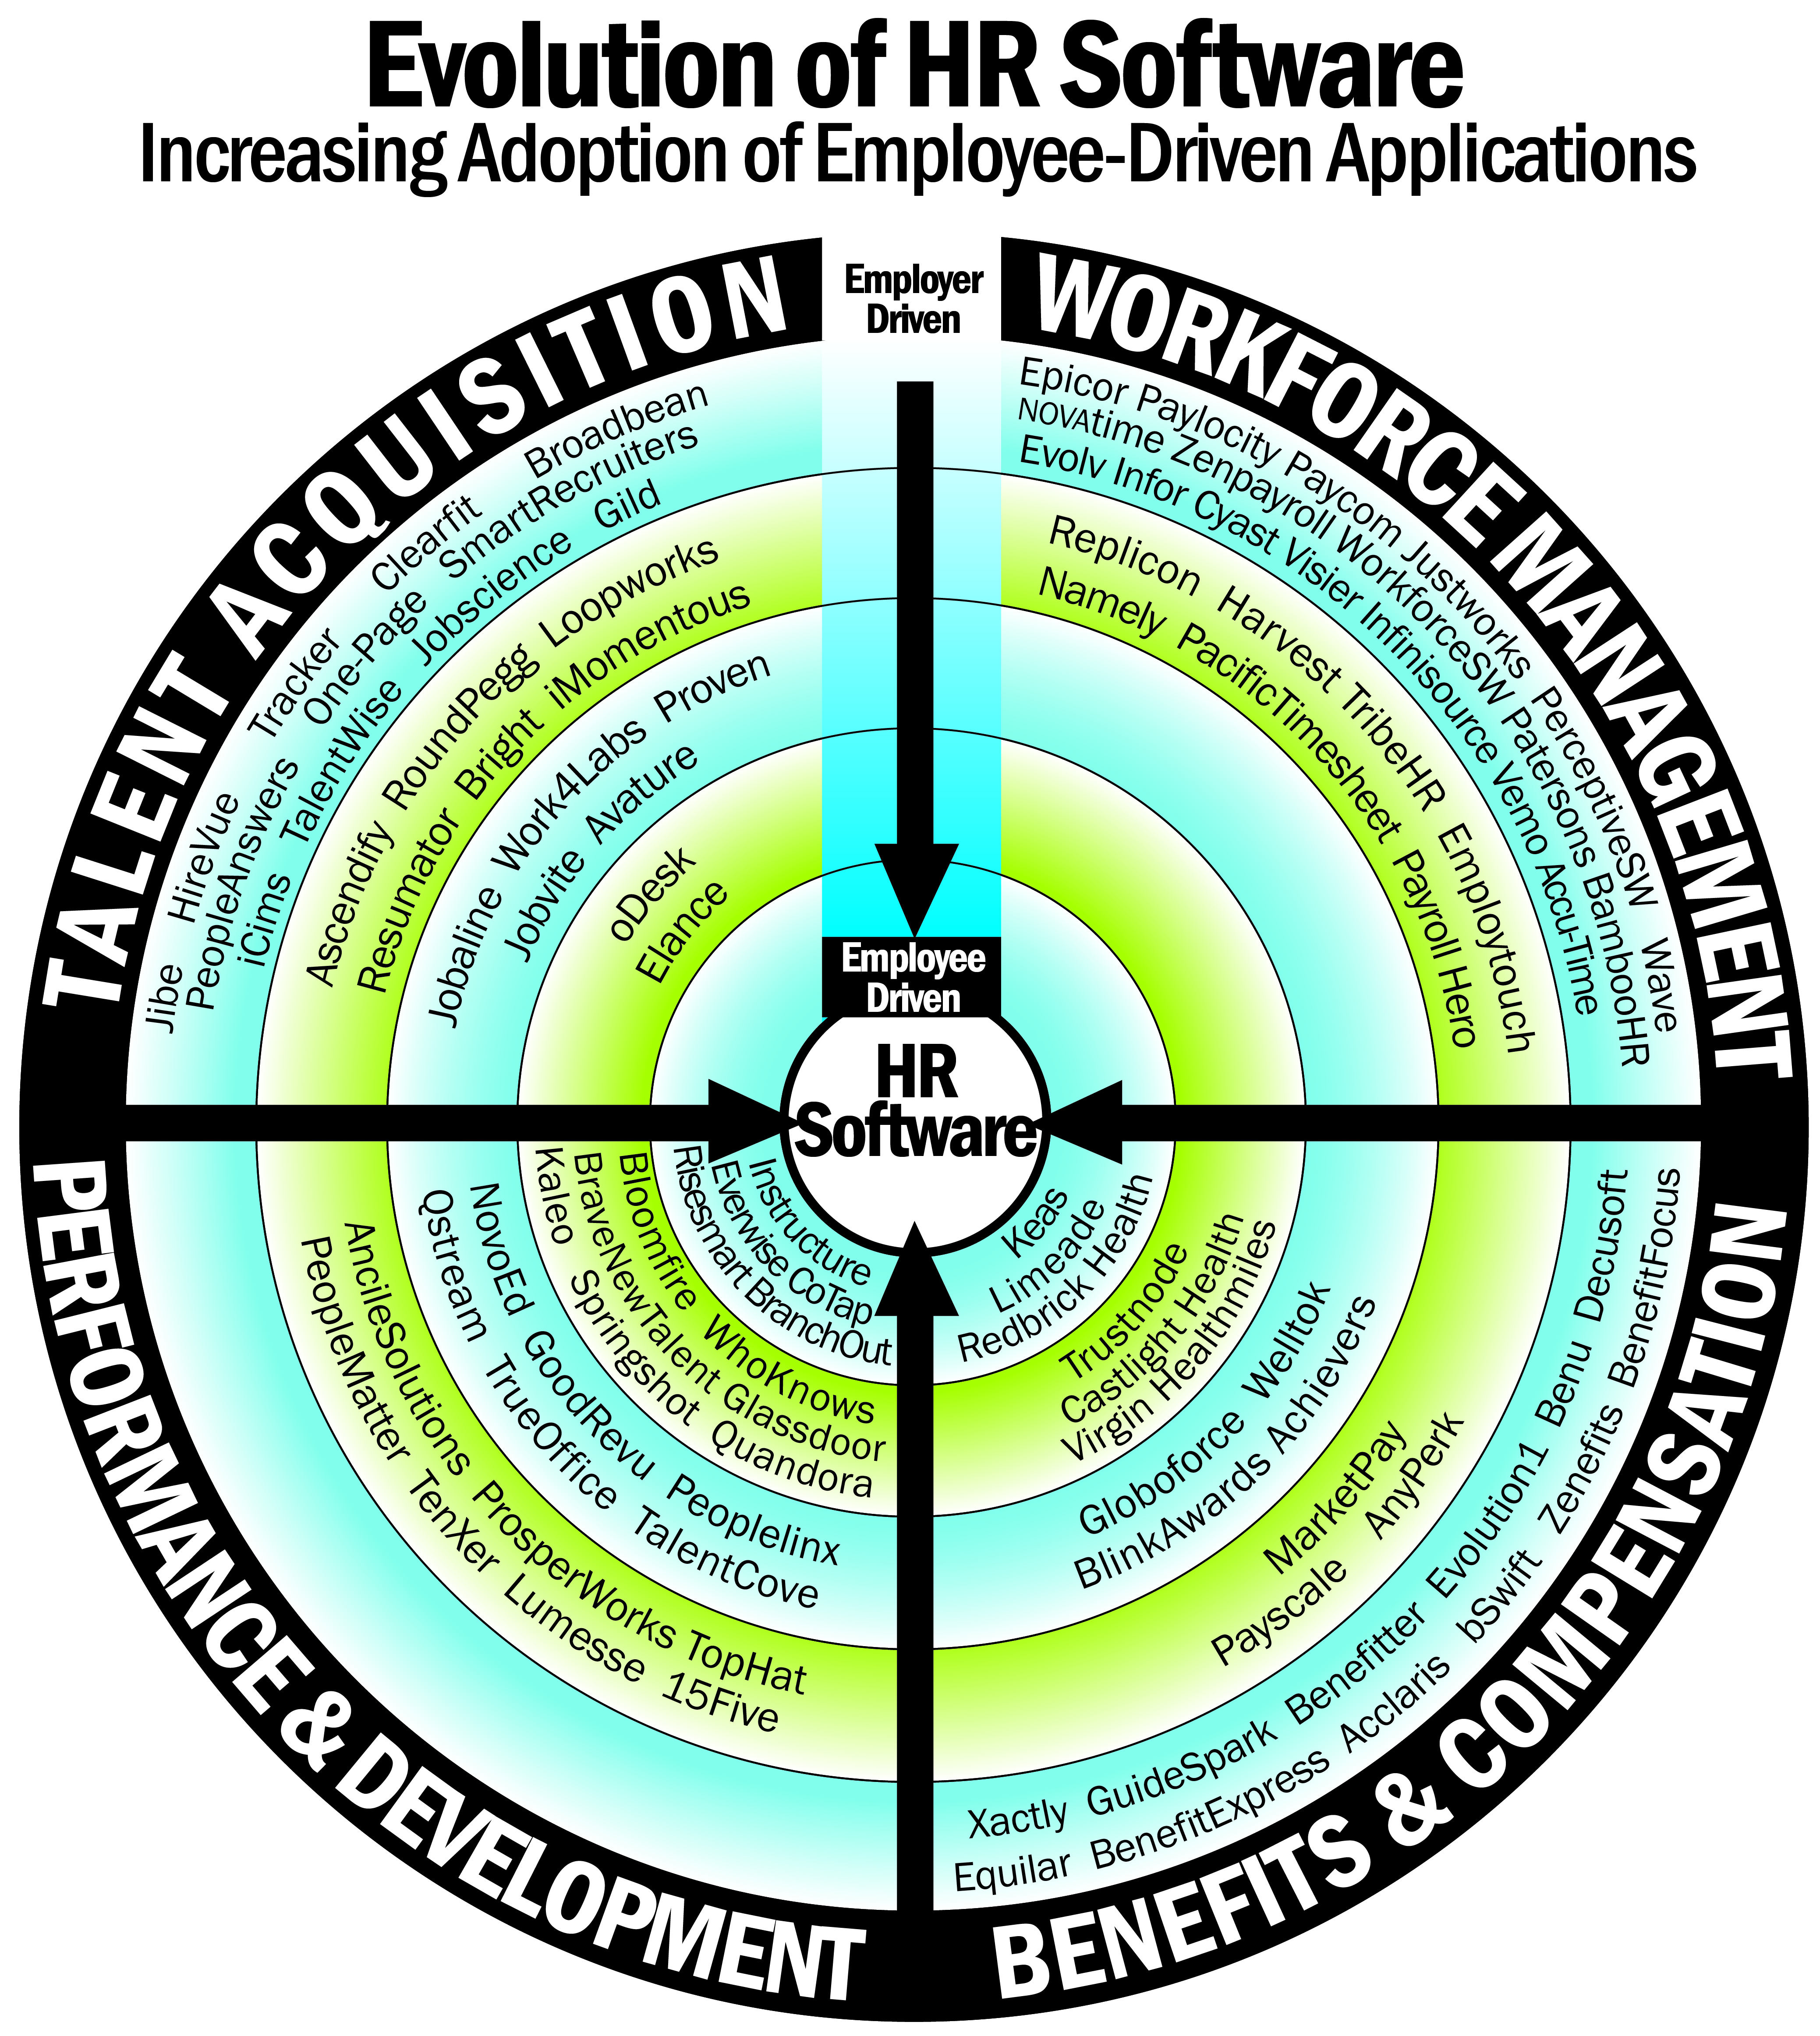 The employee centric evolution of hr software limeade evolutionofhrsoftwarechart color copy 1 ccuart Choice Image